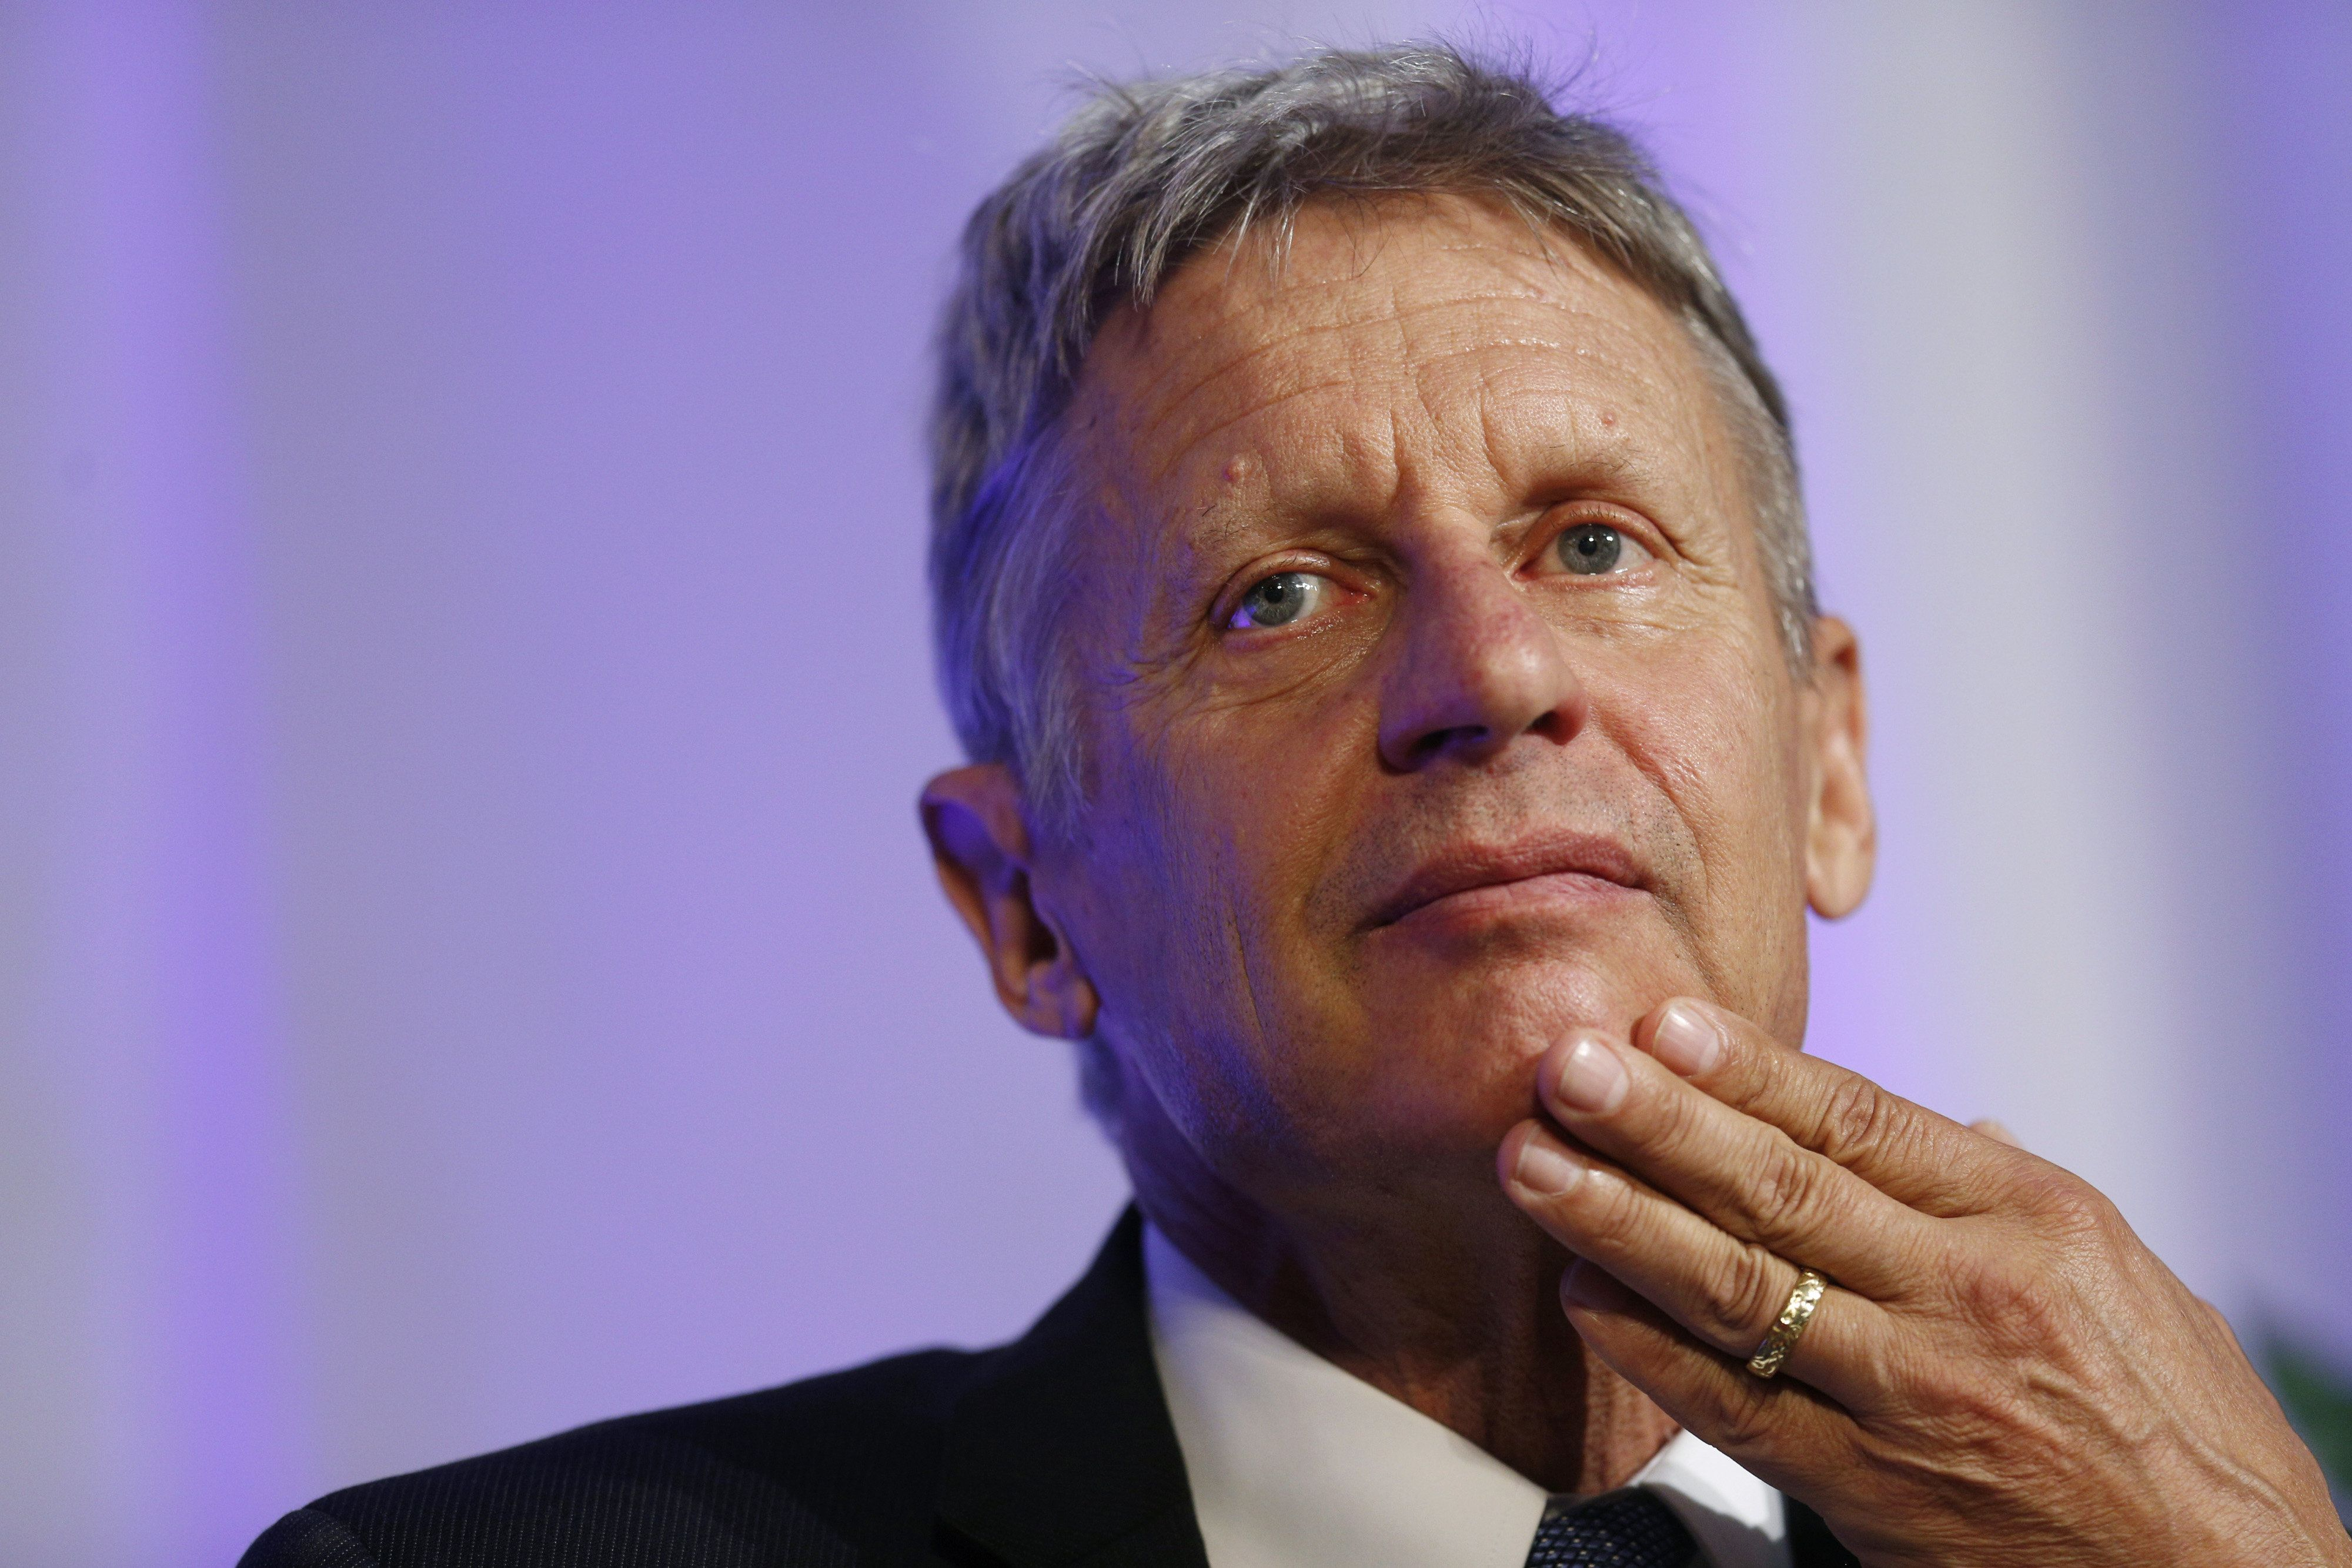 Gary Johnson, 2016 Libertarian presidential nominee, listens to questions from audience members during a campaign event at Purdue University in West Lafayette, Indiana, U.S., on Tuesday, Sept. 13, 2016. Johnson said he was 'incredibly frustrated' with himself after failing to recognize the name of the Syrian city of Aleppo in a TV interview last week. Photographer: Luke Sharrett/Bloomberg via Getty Images